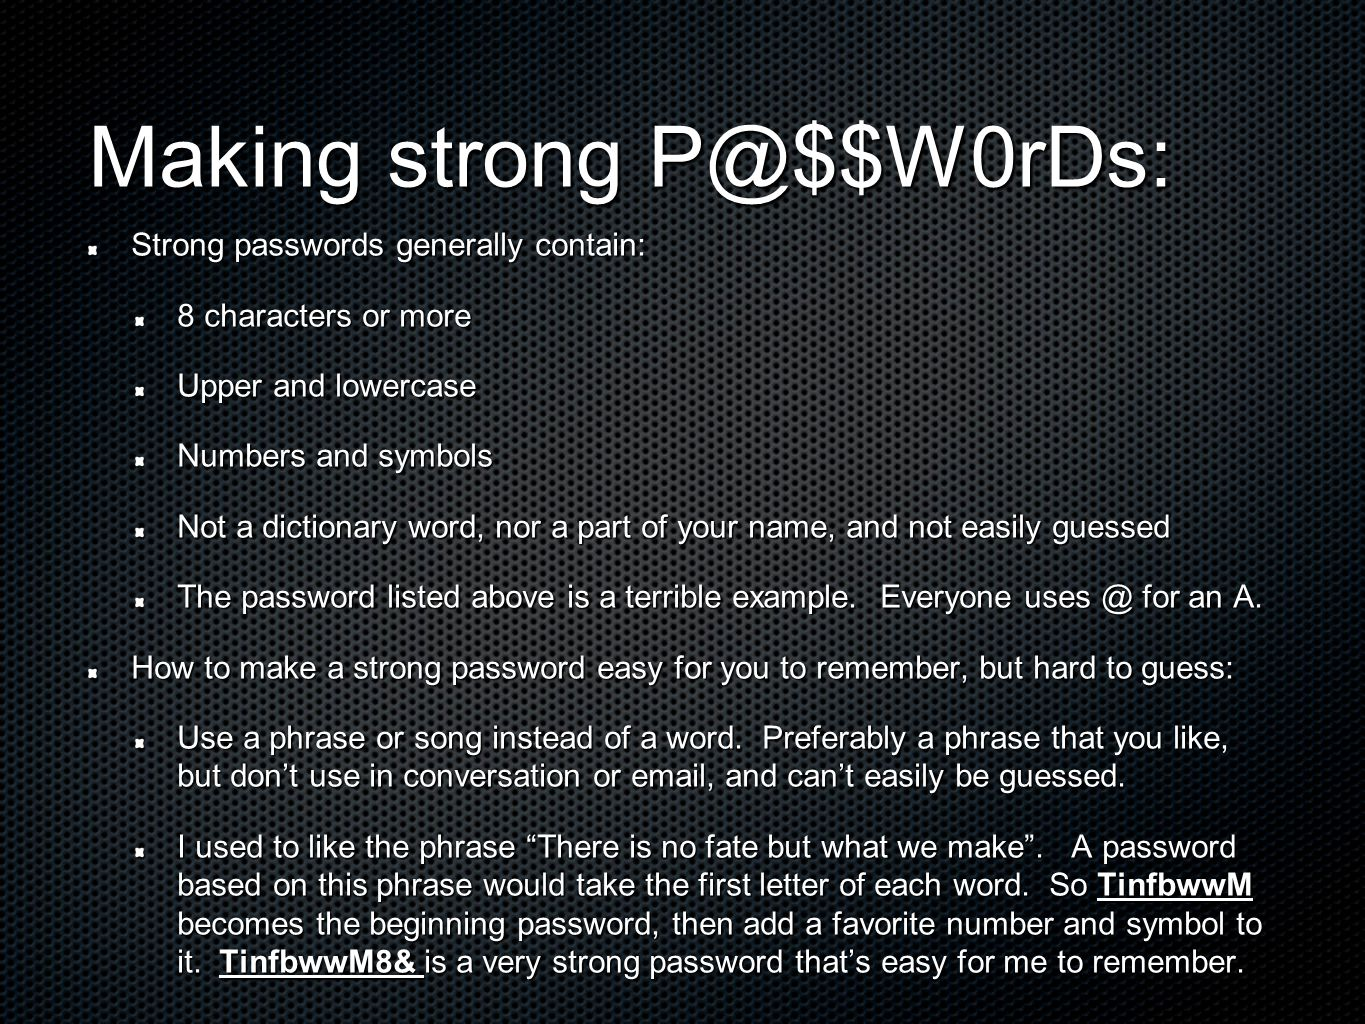 Making strong P@$$W0rDs: Strong passwords generally contain: 8 characters or more Upper and lowercase Numbers and symbols Not a dictionary word, nor a part of your name, and not easily guessed The password listed above is a terrible example.